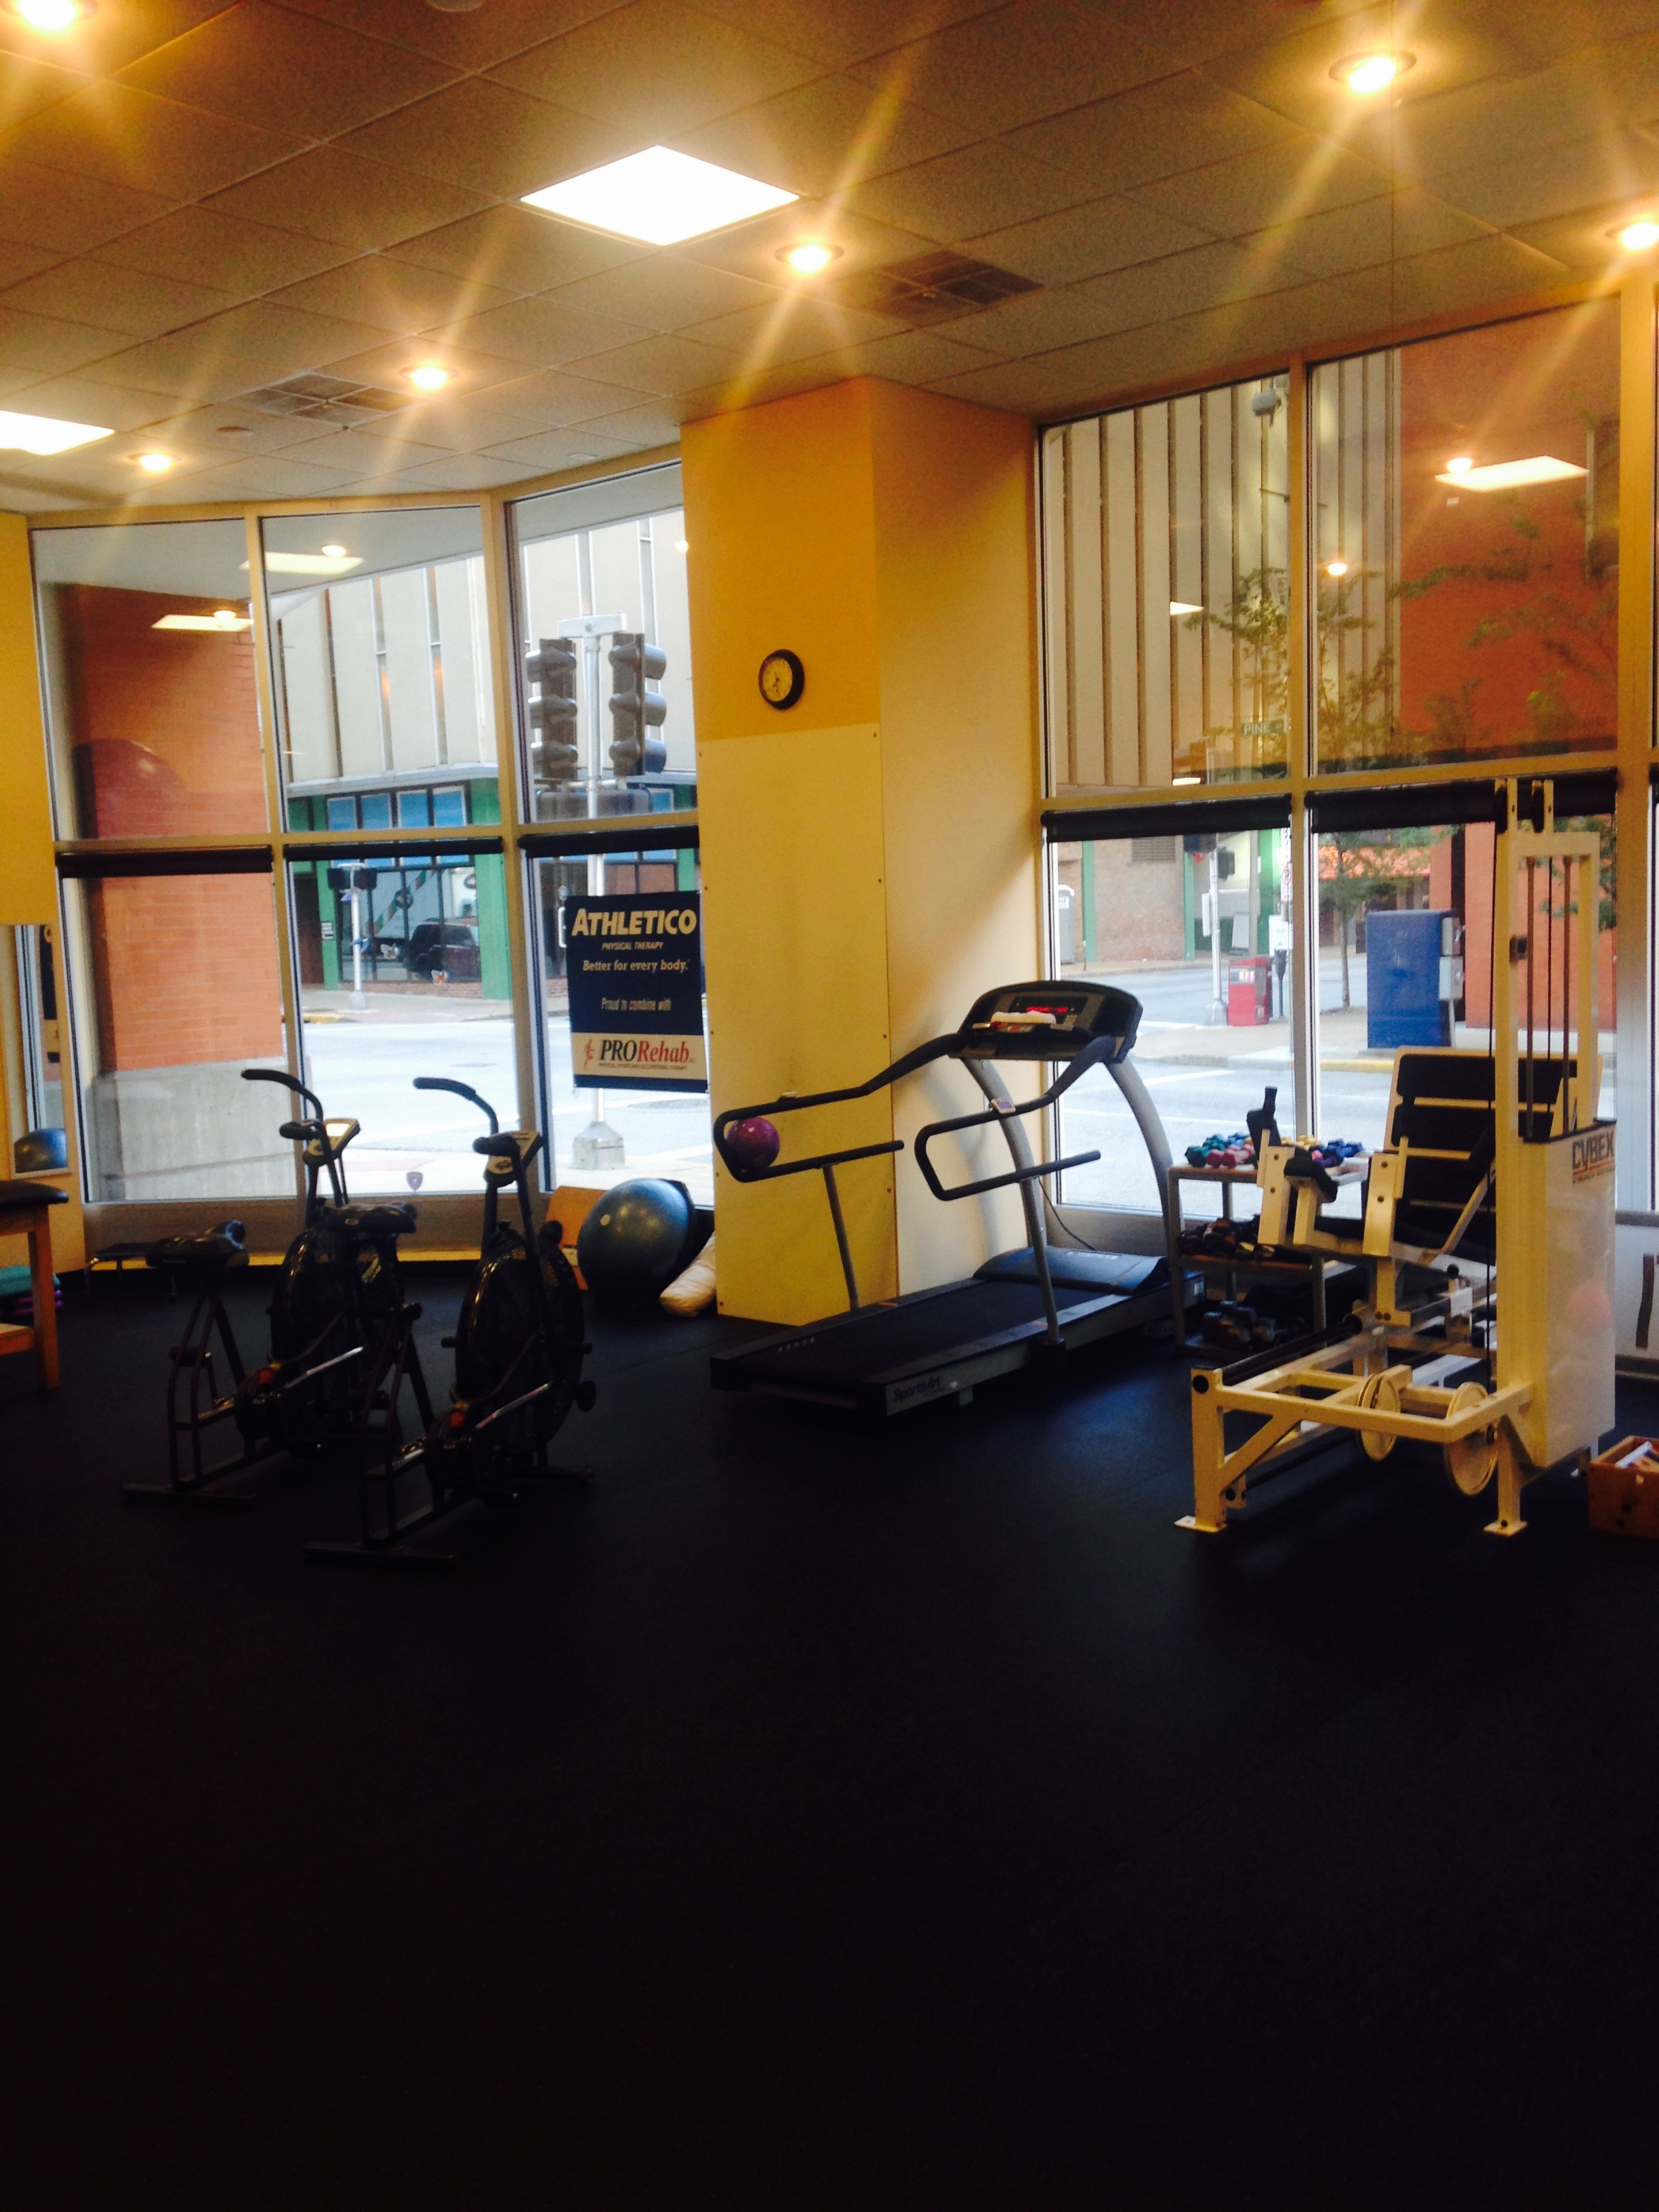 Athletico Physical Therapy - Downtown St. Louis image 0